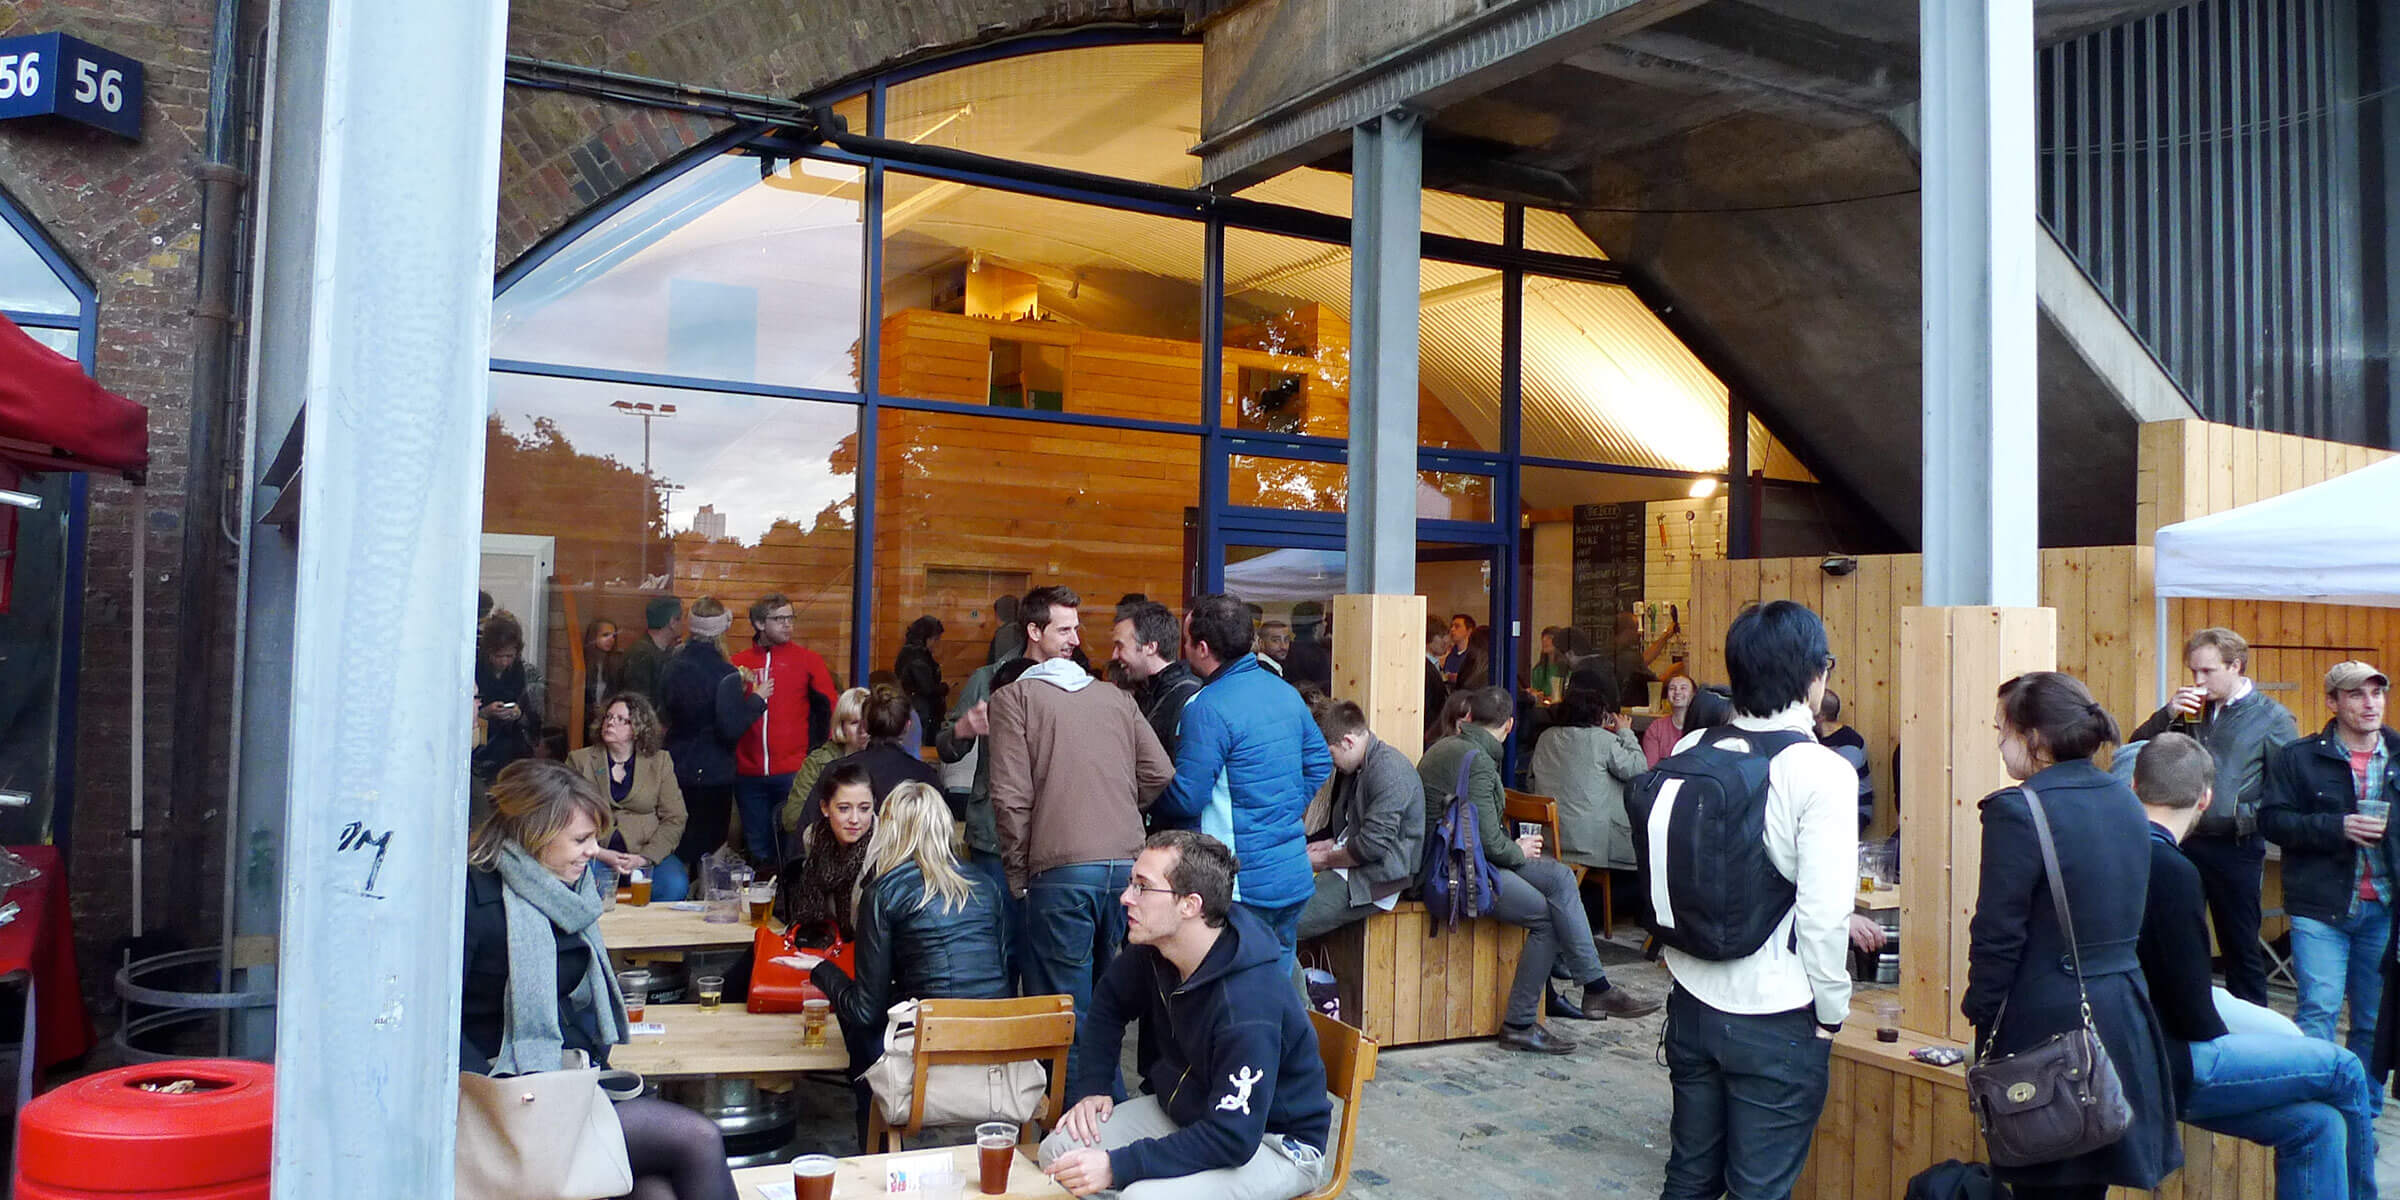 Outside on the patio at the Camden Town Brewery Pop-Up Bar in London, England